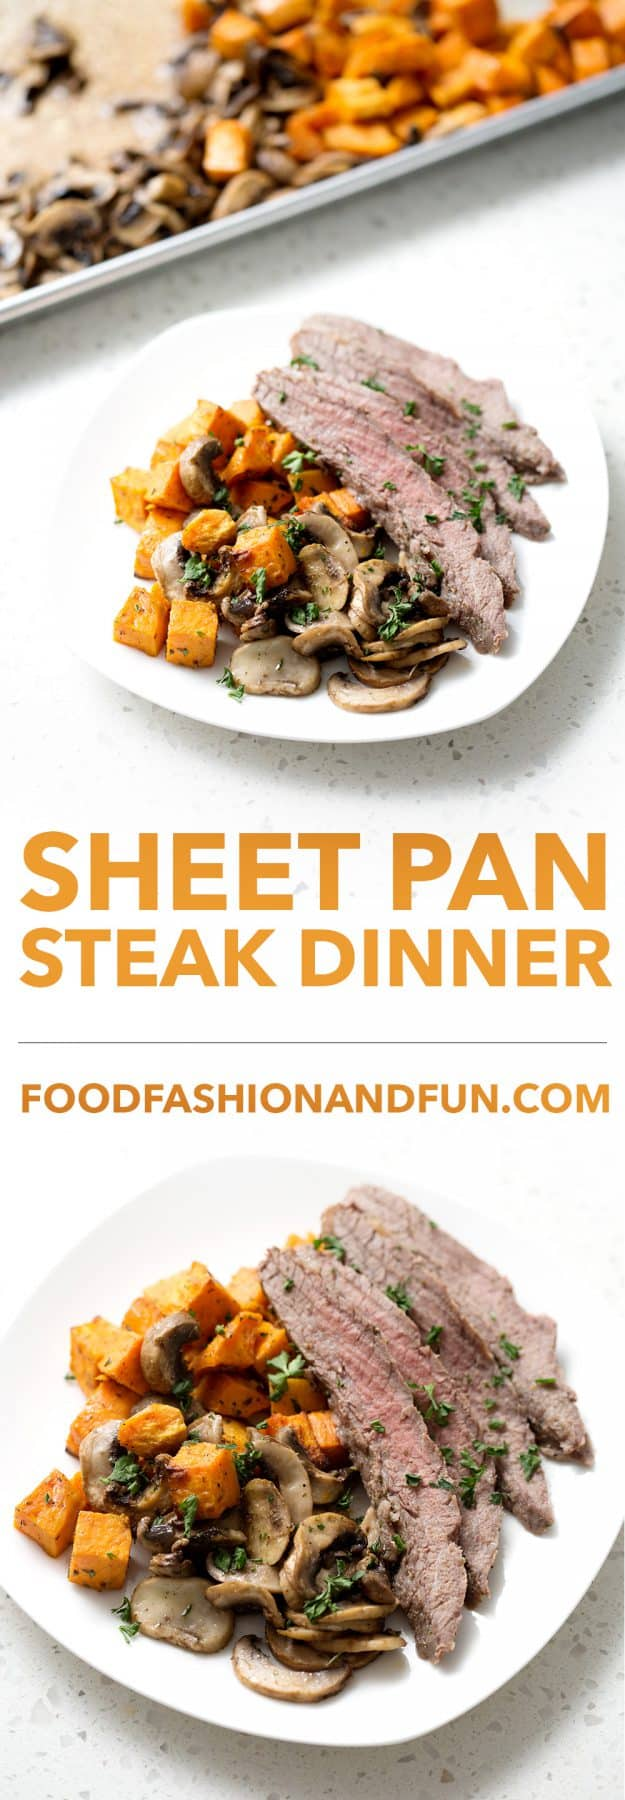 This Sheet Pan Steak Dinner is quick and easy with very little cleanup. This flank steak with mushrooms and sweet potatoes dish is one that your family will request again and again!